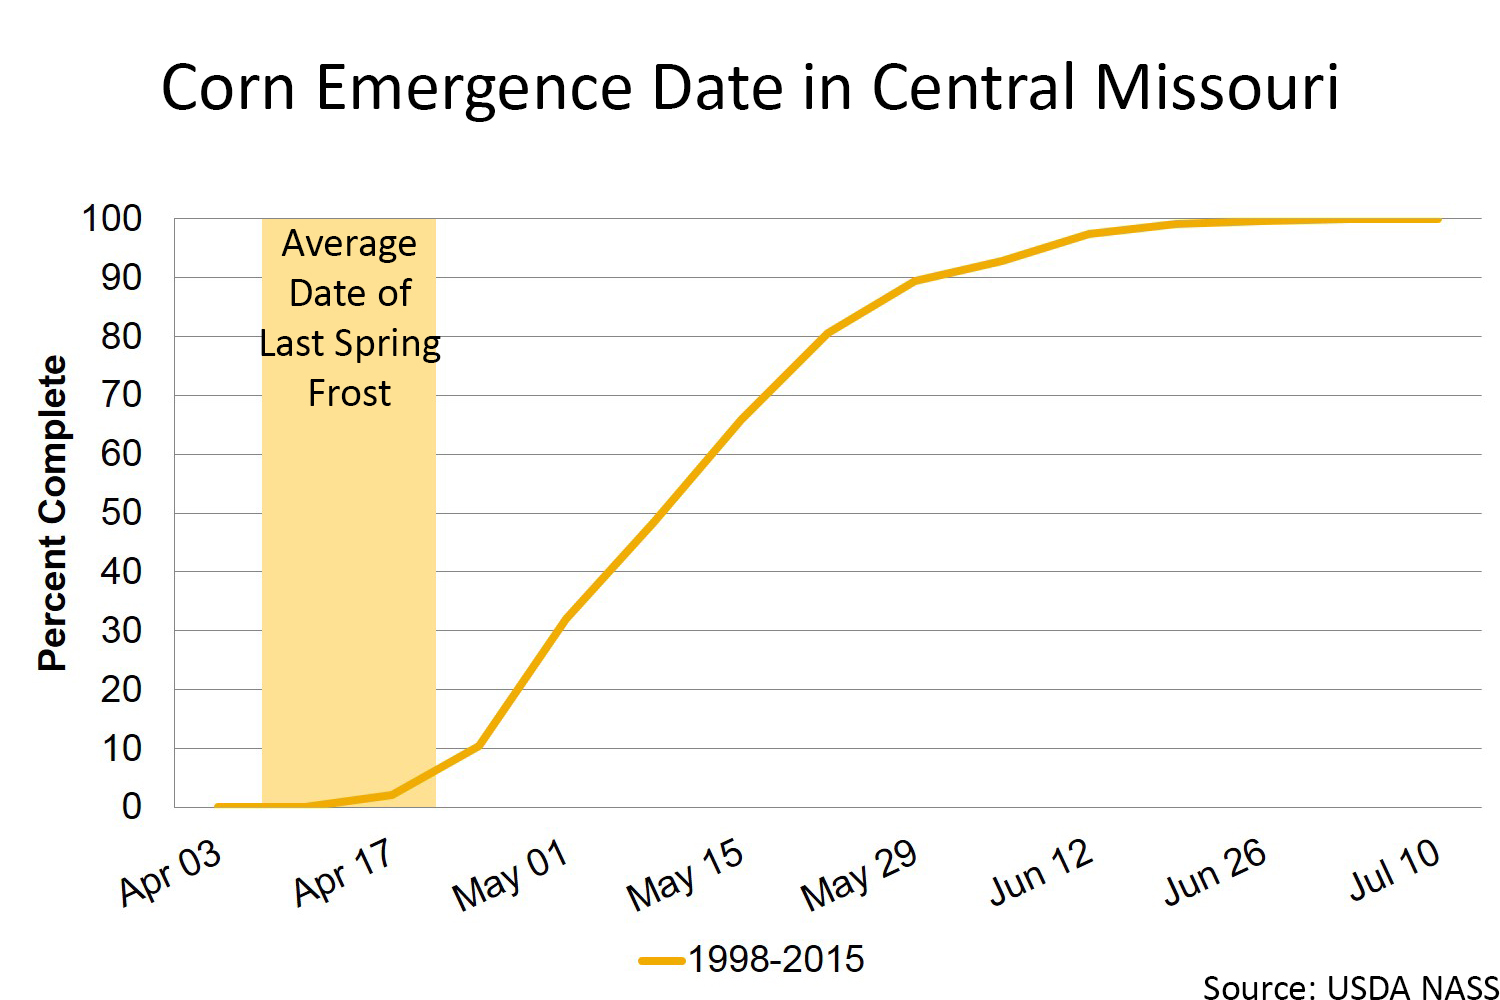 Corn emergence date in central Missouri chart